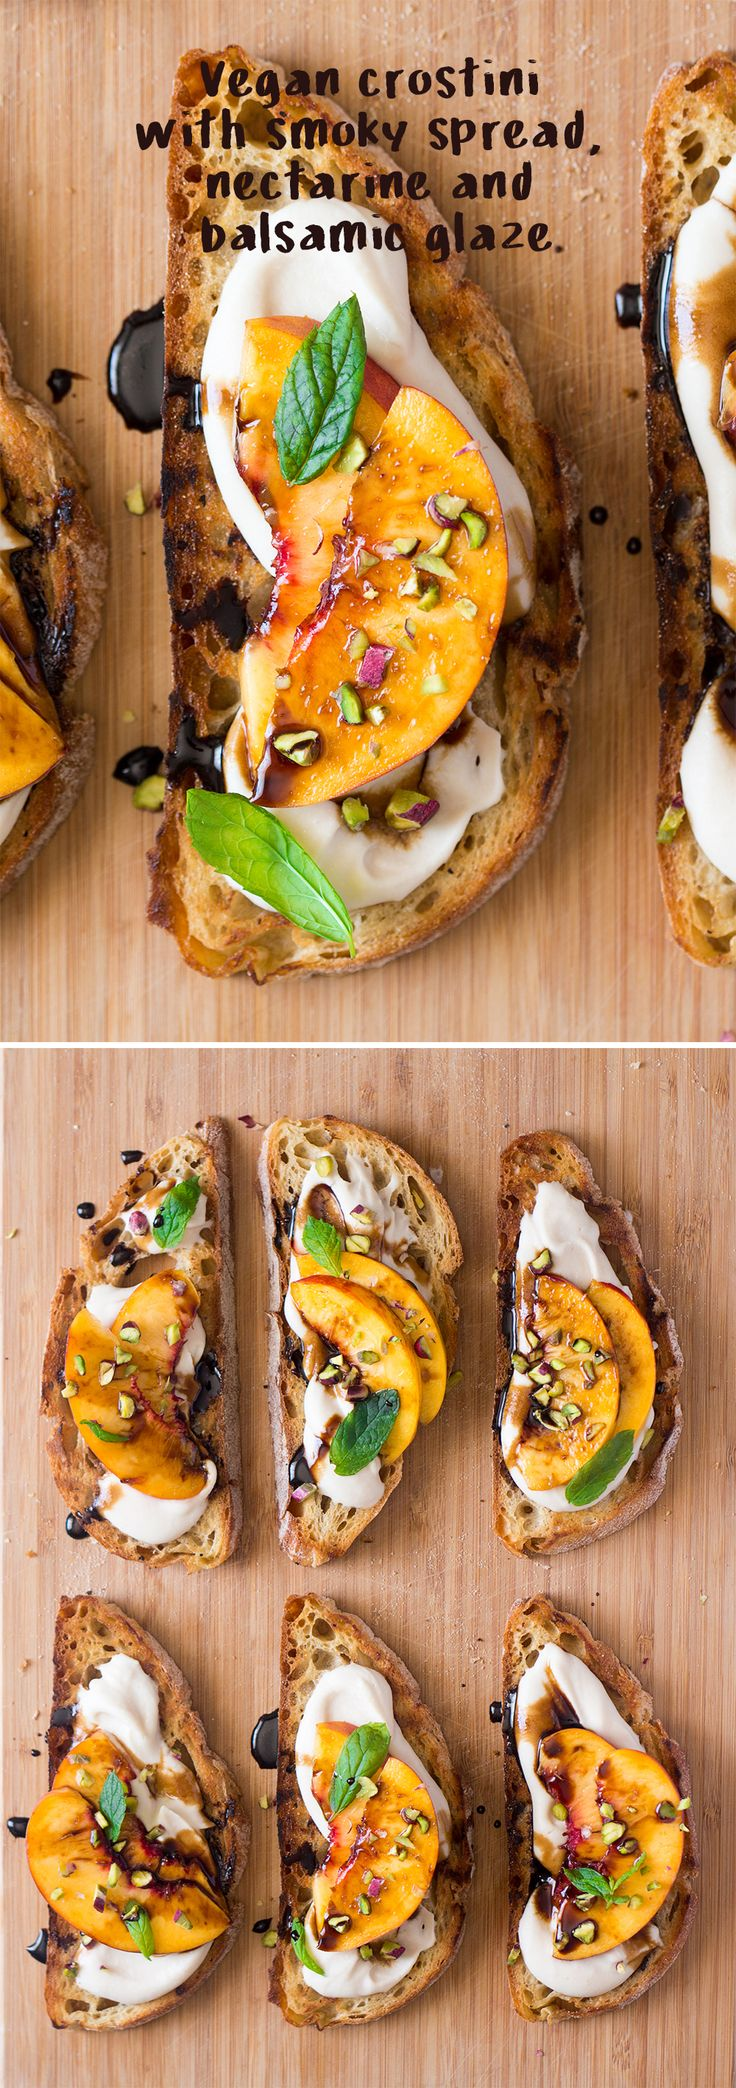 Vegan crostini with smoky white bean spread and nectarine